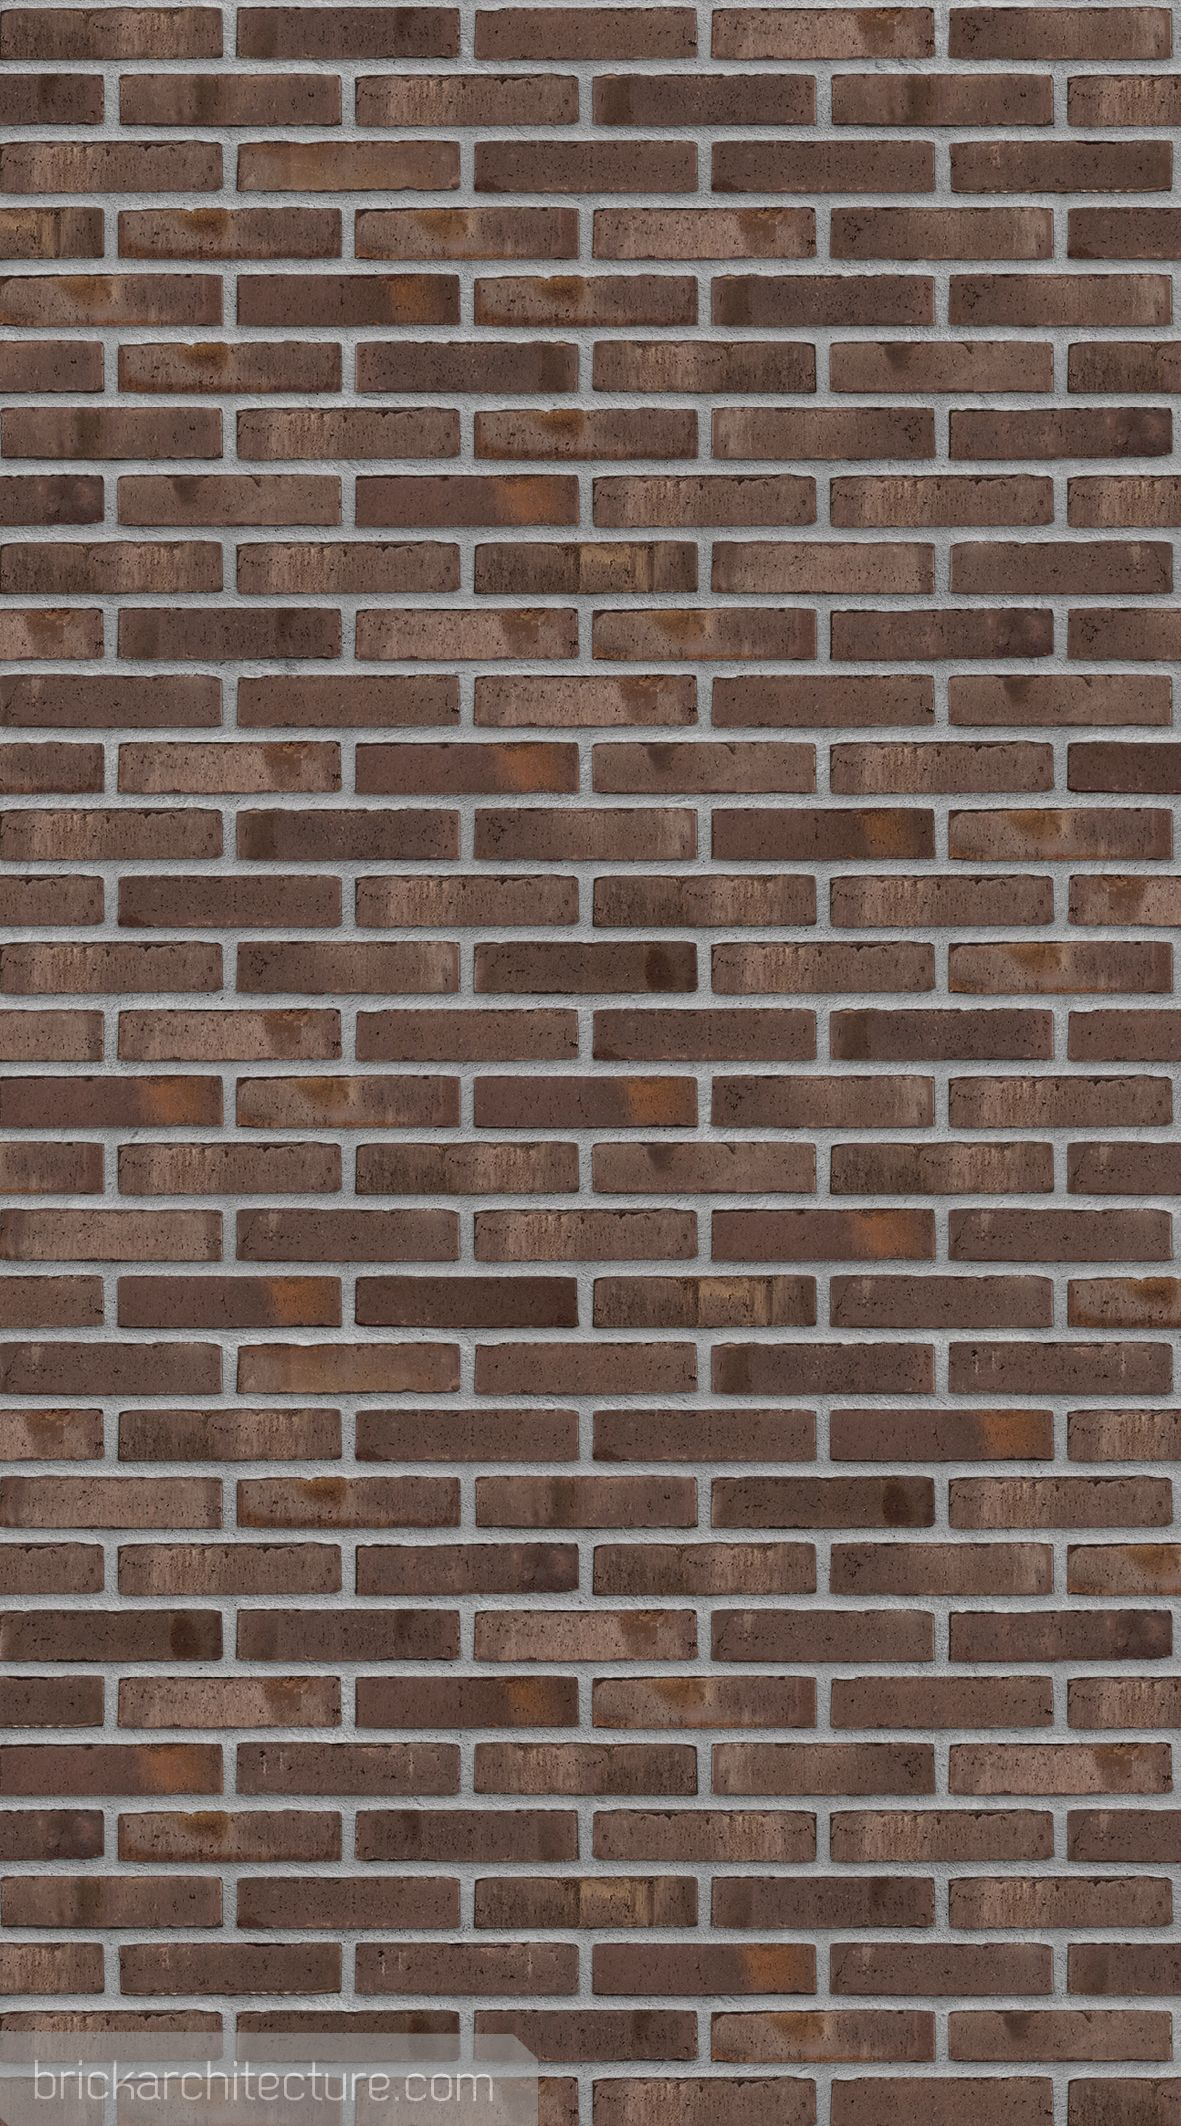 Vandersanden 516 Flemming Ws Brick Wall Wallpaper Brick Texture Brick Design